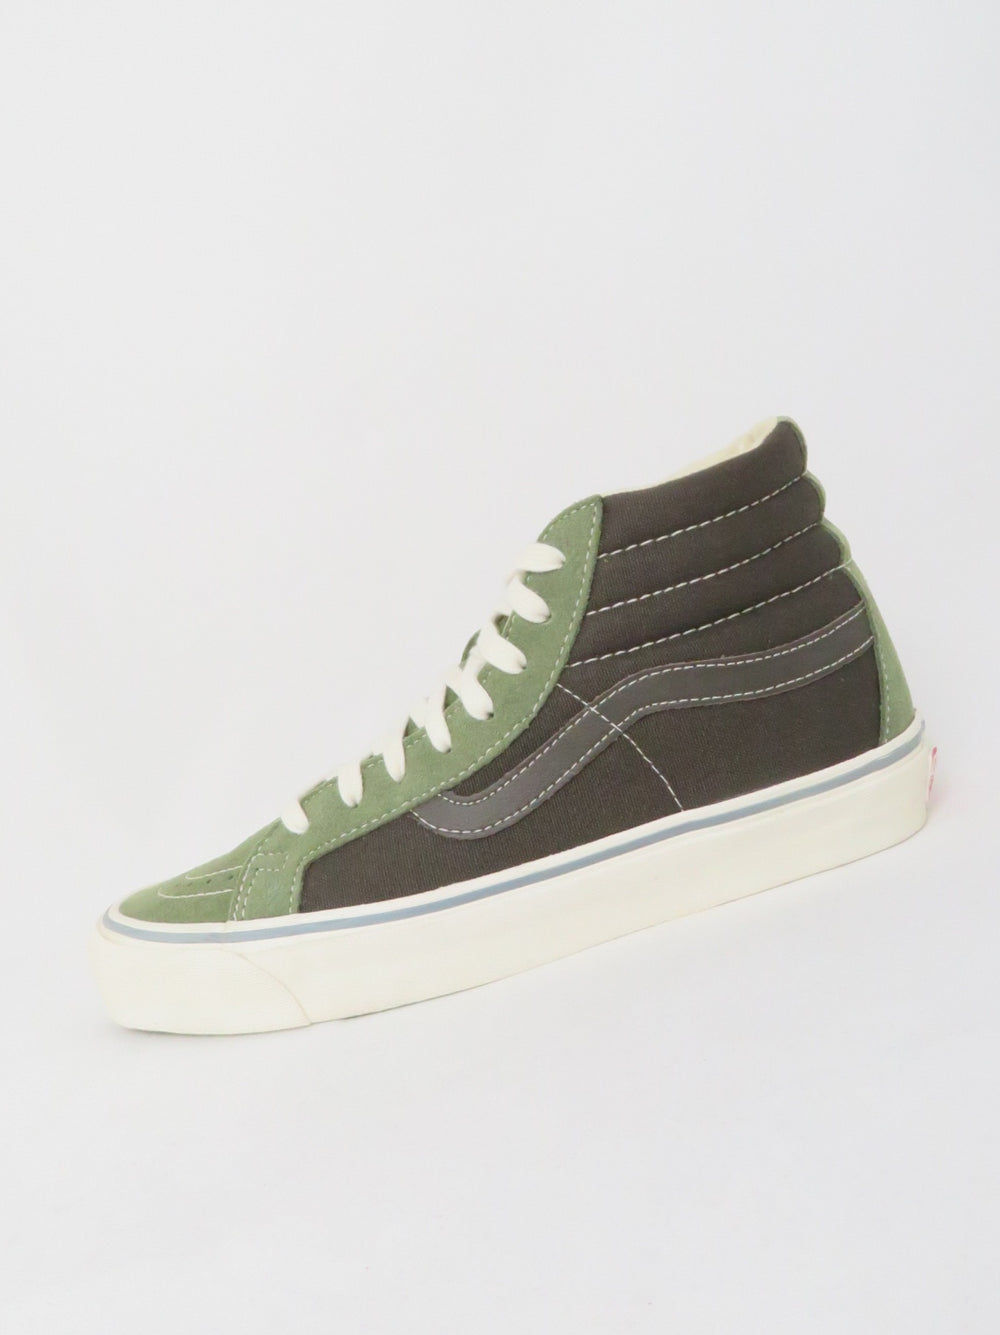 "vans off the wall dark chocolate and sage green classic high top sneakers. features canvas and suede upper with contrast topstitching throughout and branding at tongue and heel. lace-up closure, 1.25"" outsole."